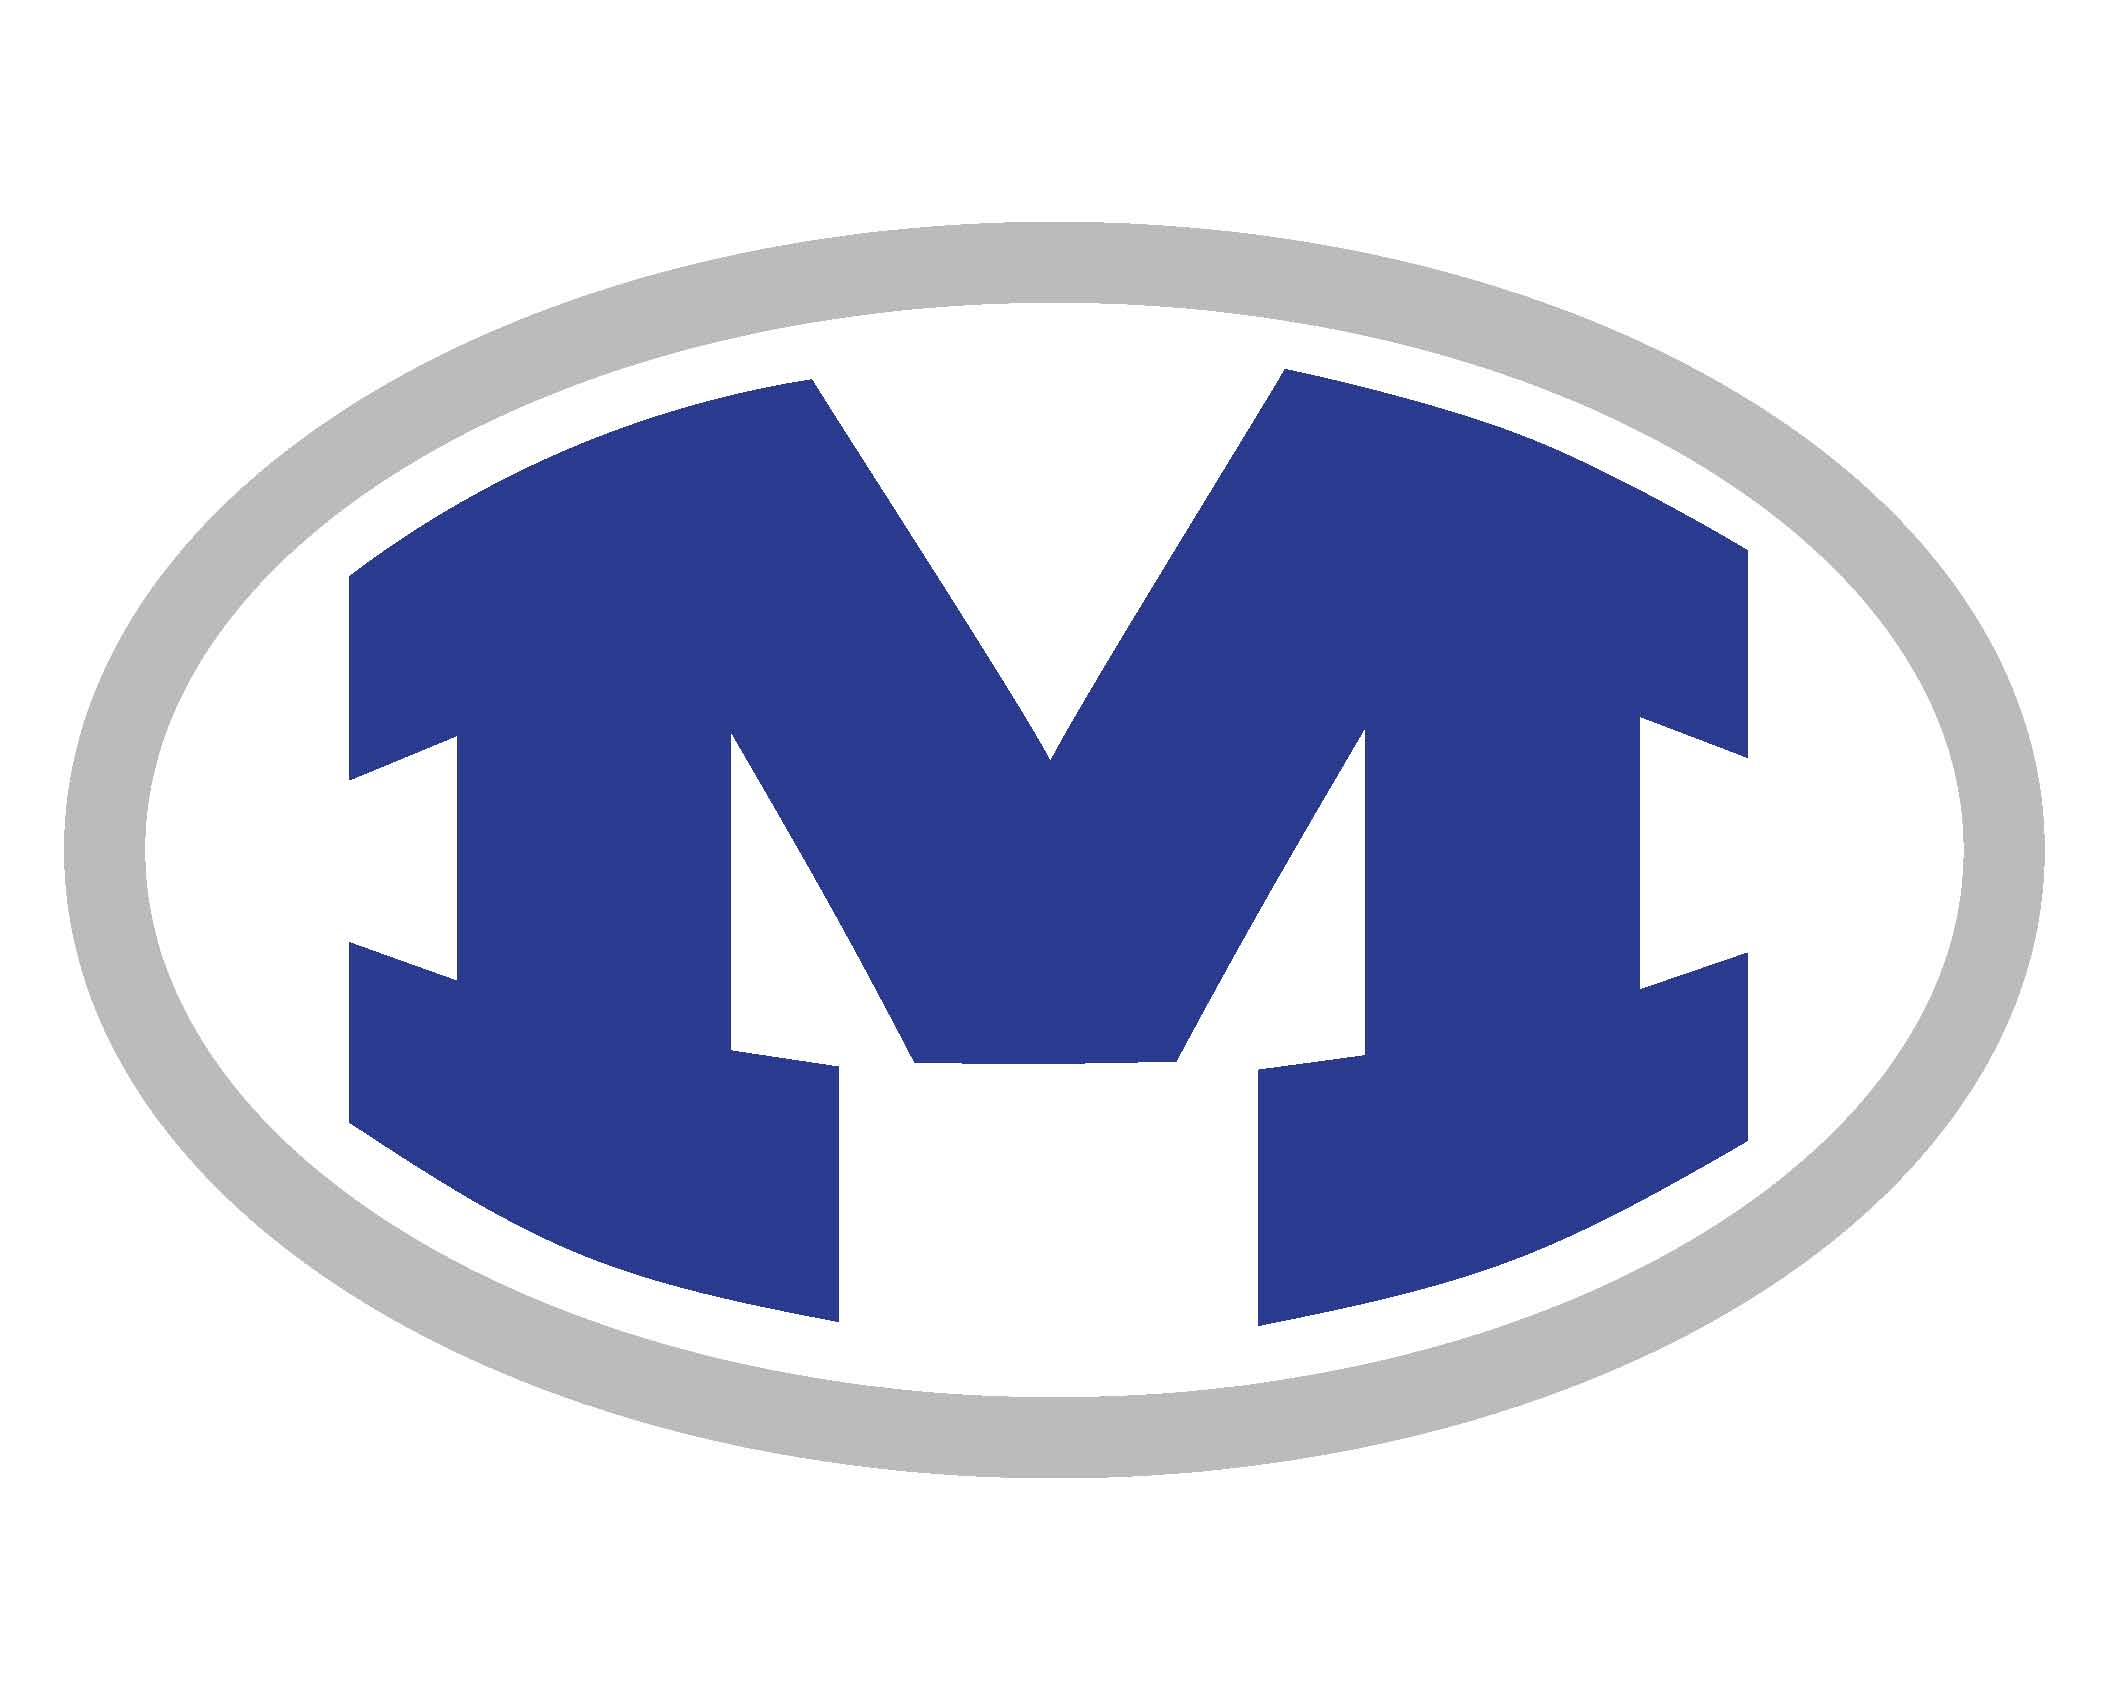 Miamisburg M with grey outline